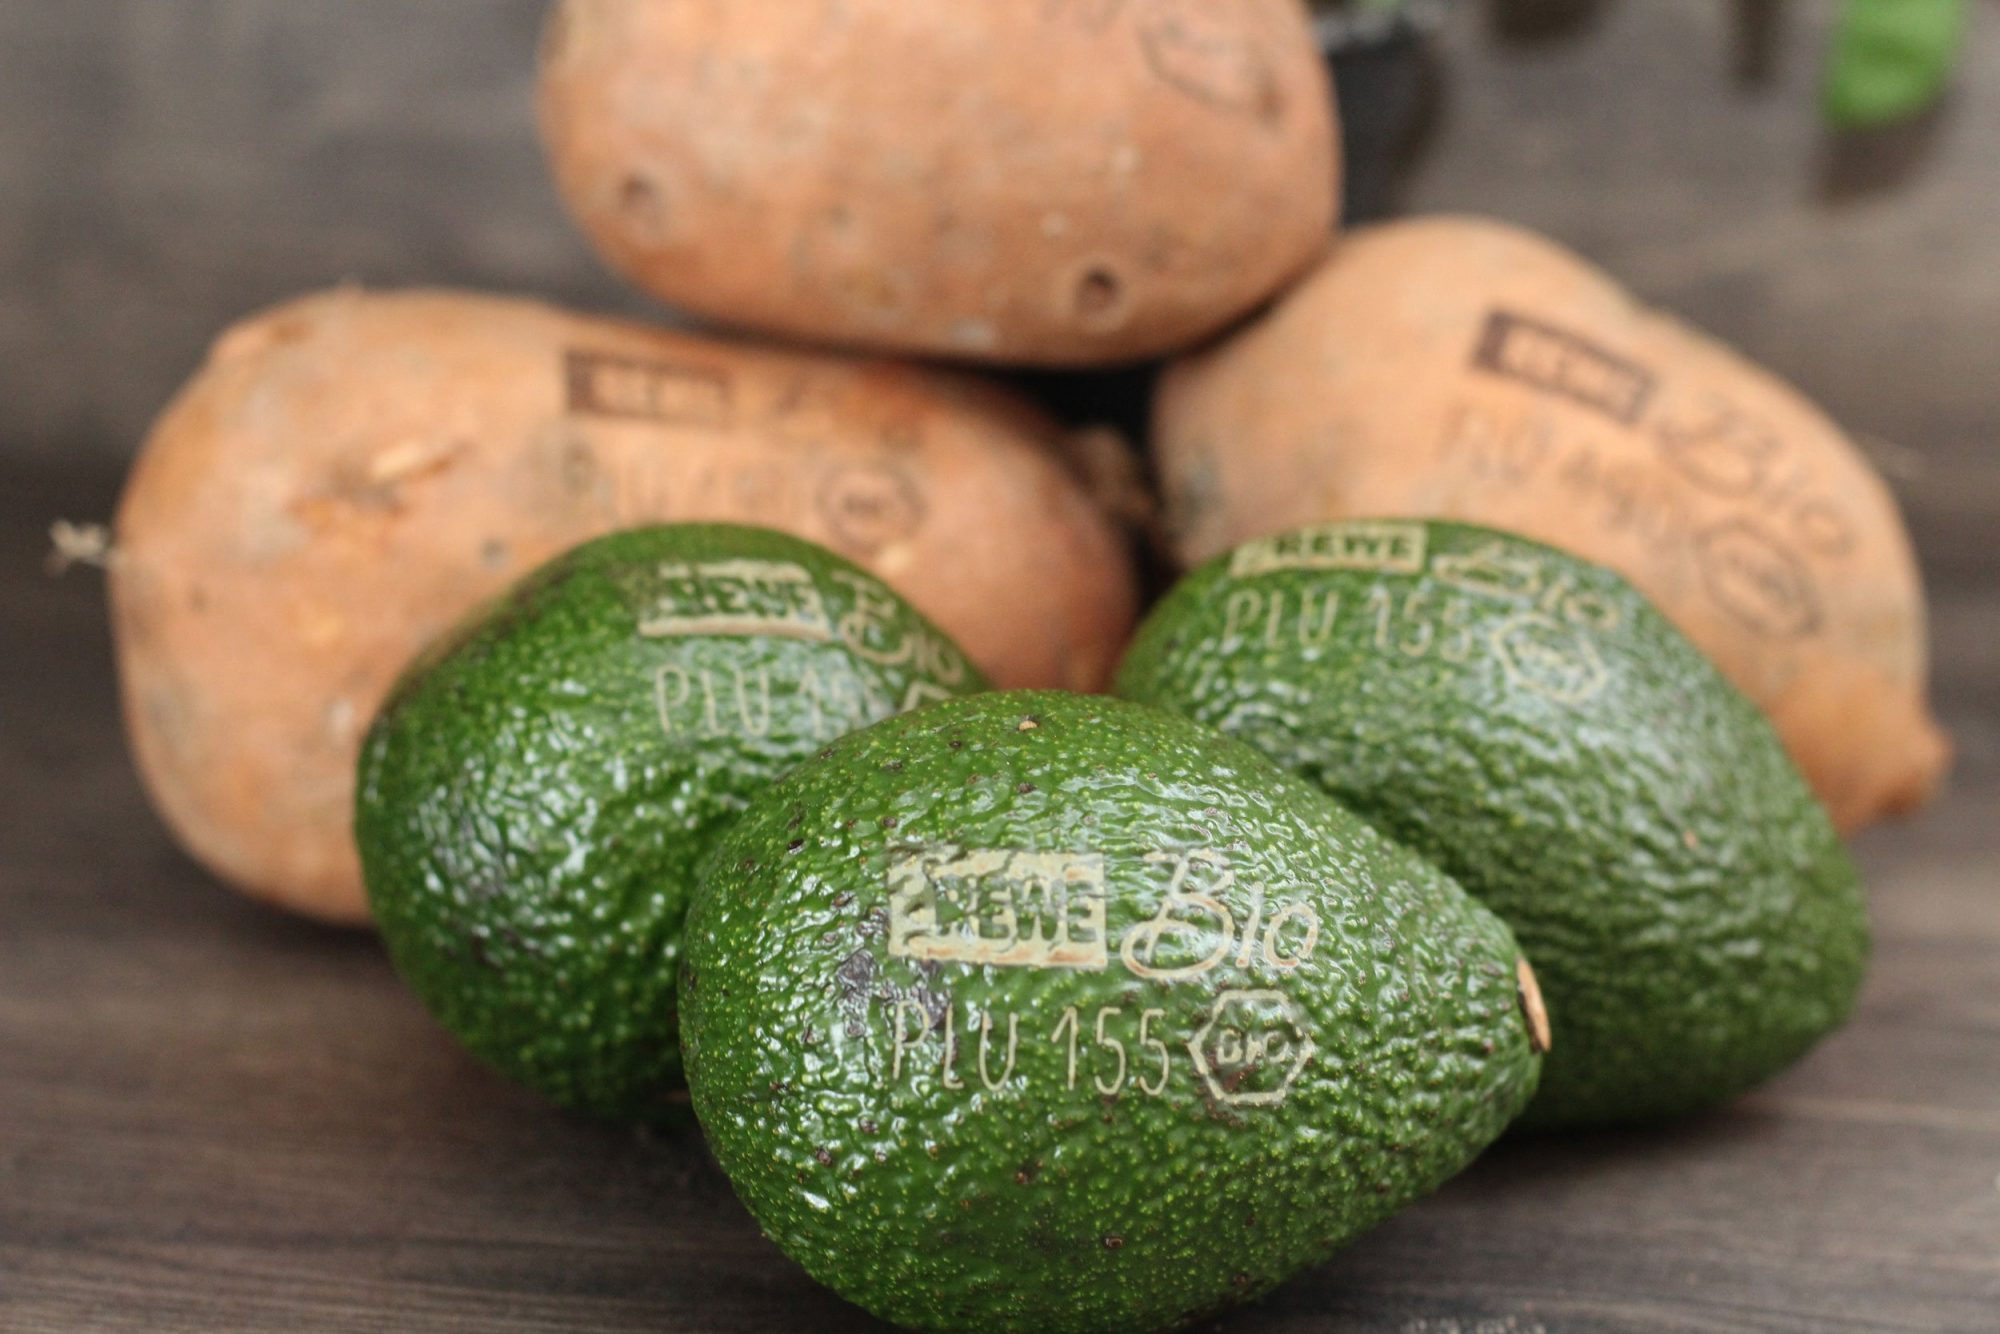 EC: A Woman Allegedly Found a Bullet Inside Her Avocado